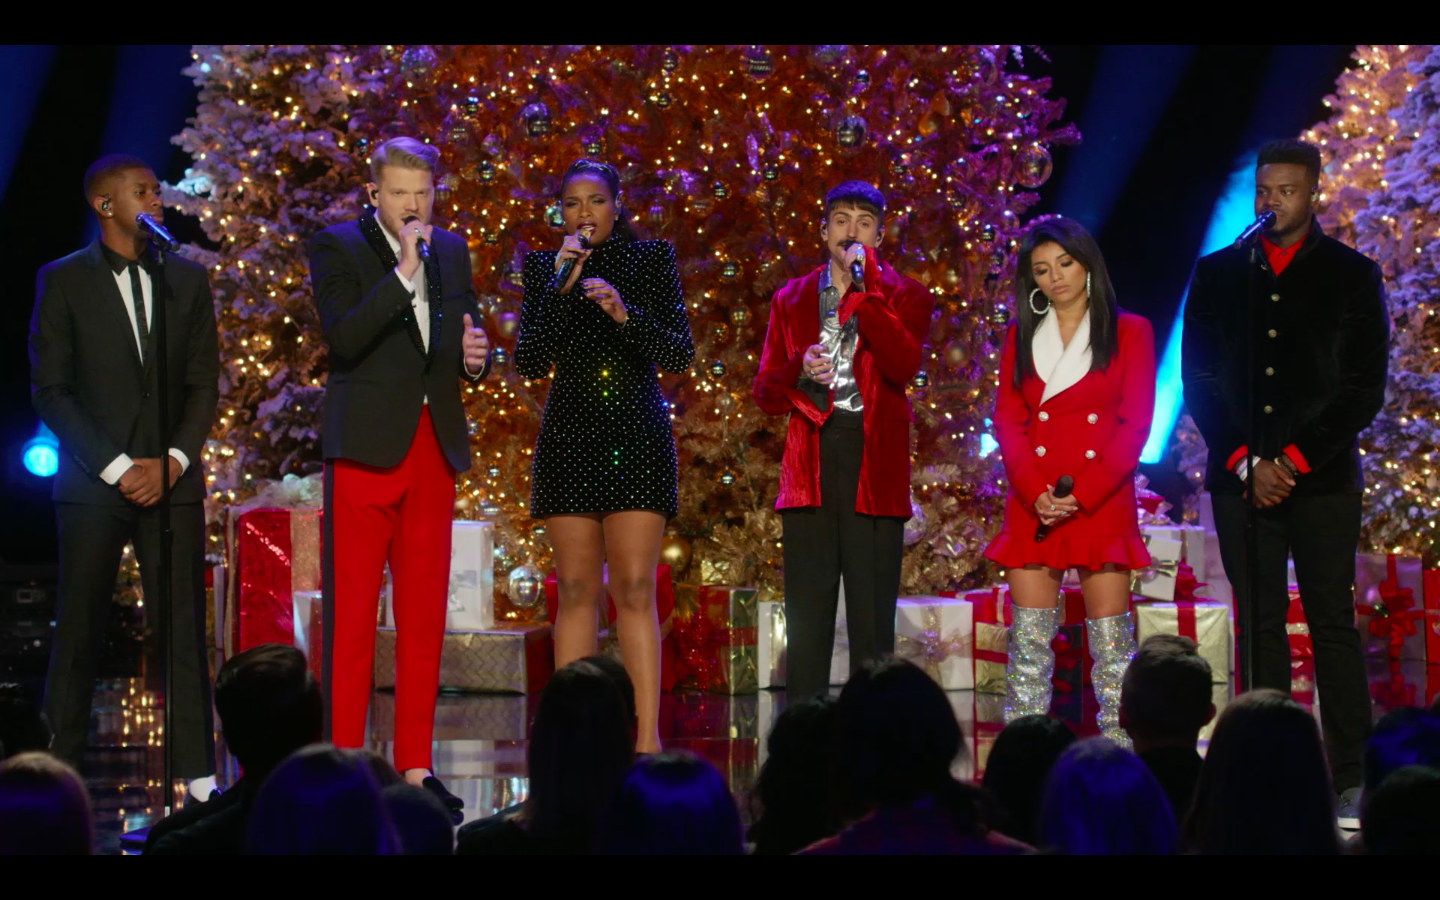 HOW GREAT THOU ART - PENTATONIX FEATURING JENNIFER HUDSON